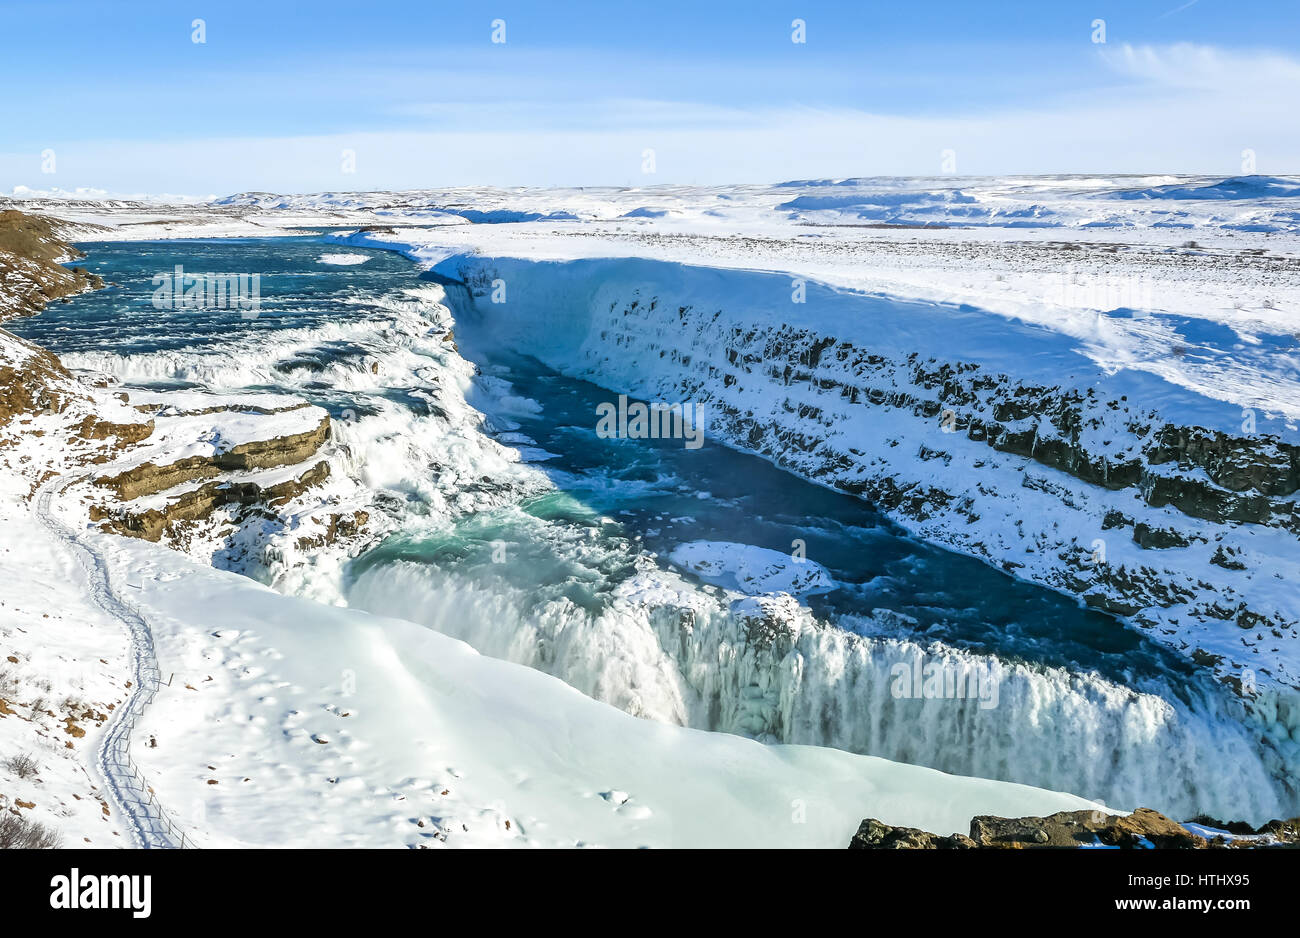 Looking over the edge of cliff to the two tier frozen waterfalls, Gullfoss, Golden Circle, Iceland - Stock Image